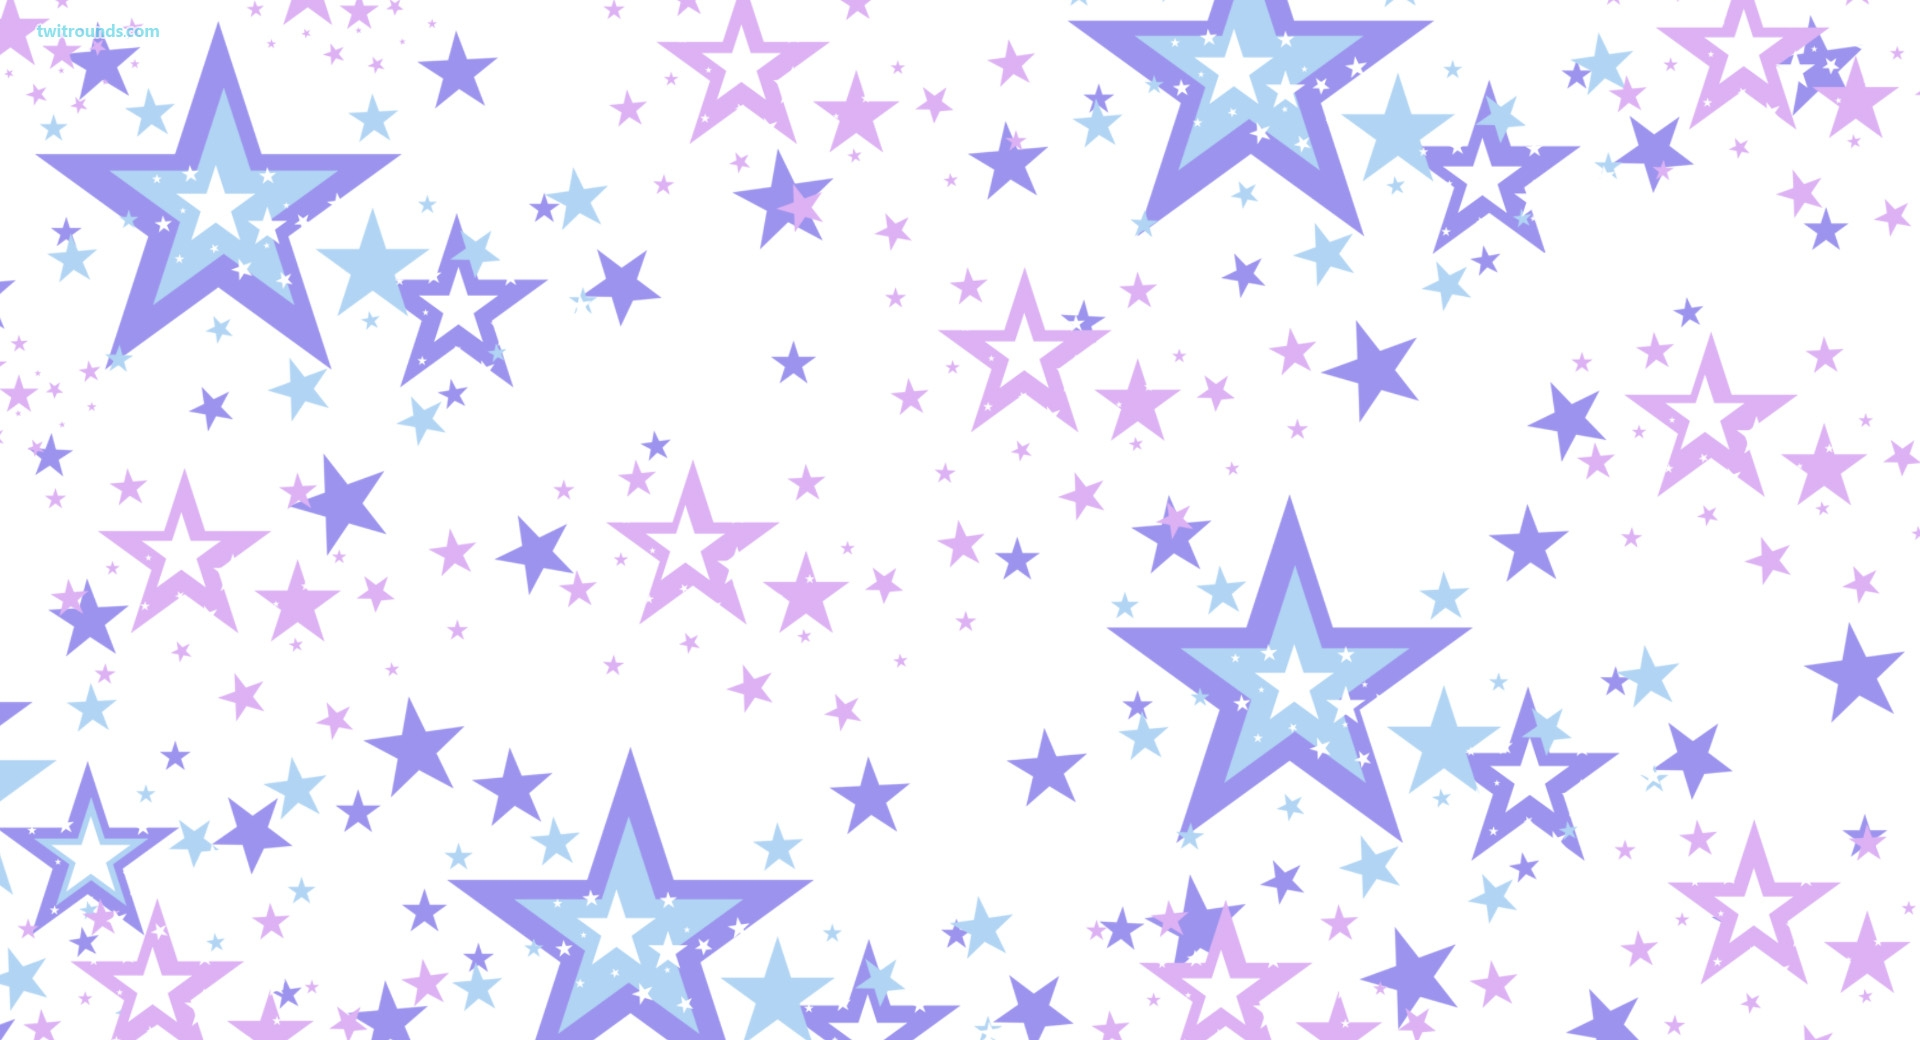 Background clipart star #13